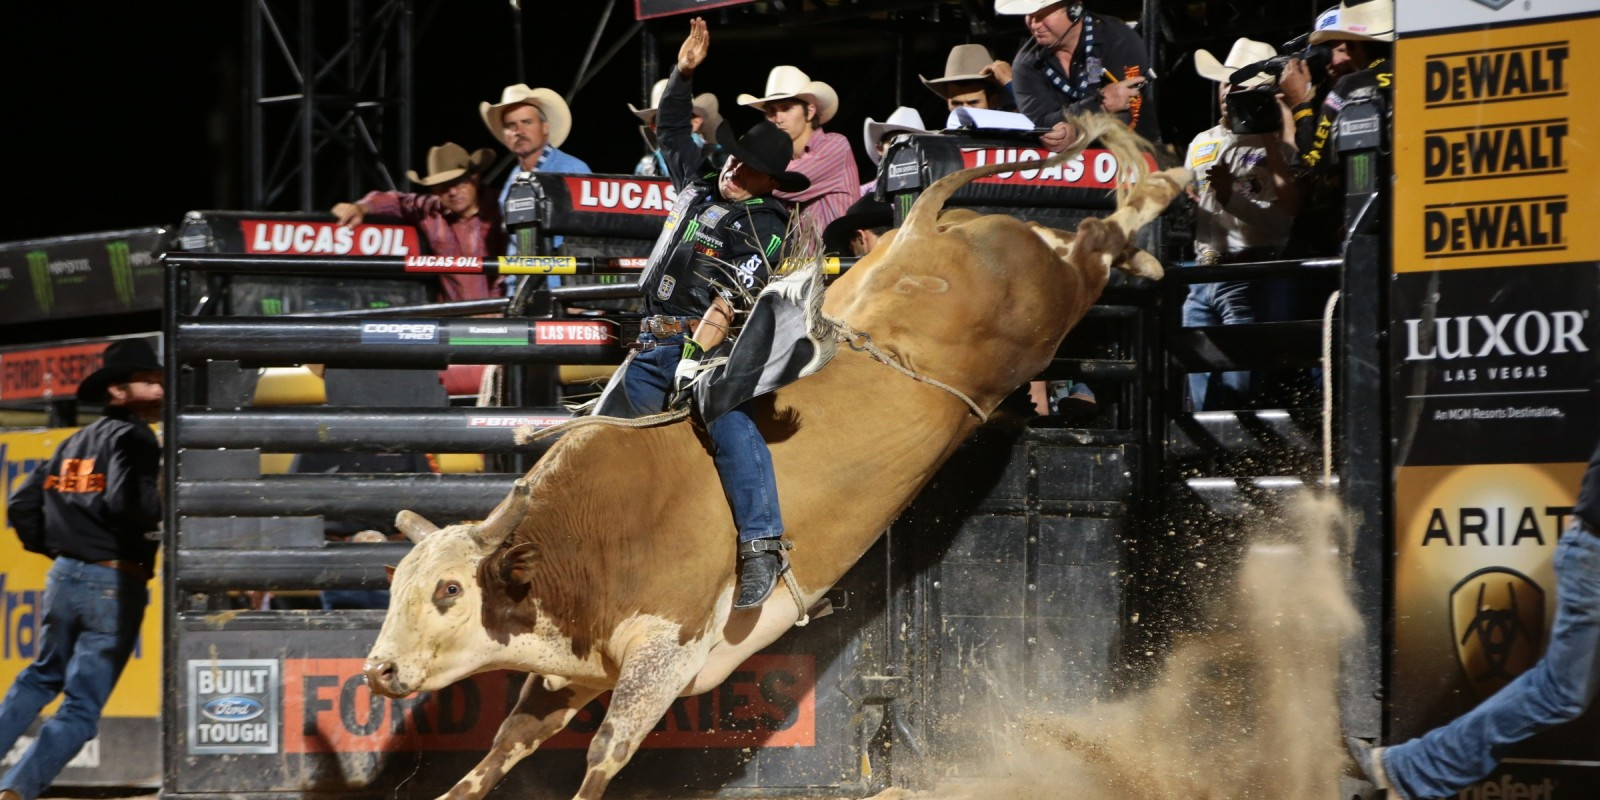 Robson Palermo attempts to ride Holmes/Jackson/Flying S's Red Moon during the second round of Helldorado Days Last Cowboy Standing Built Ford Tough series PBR